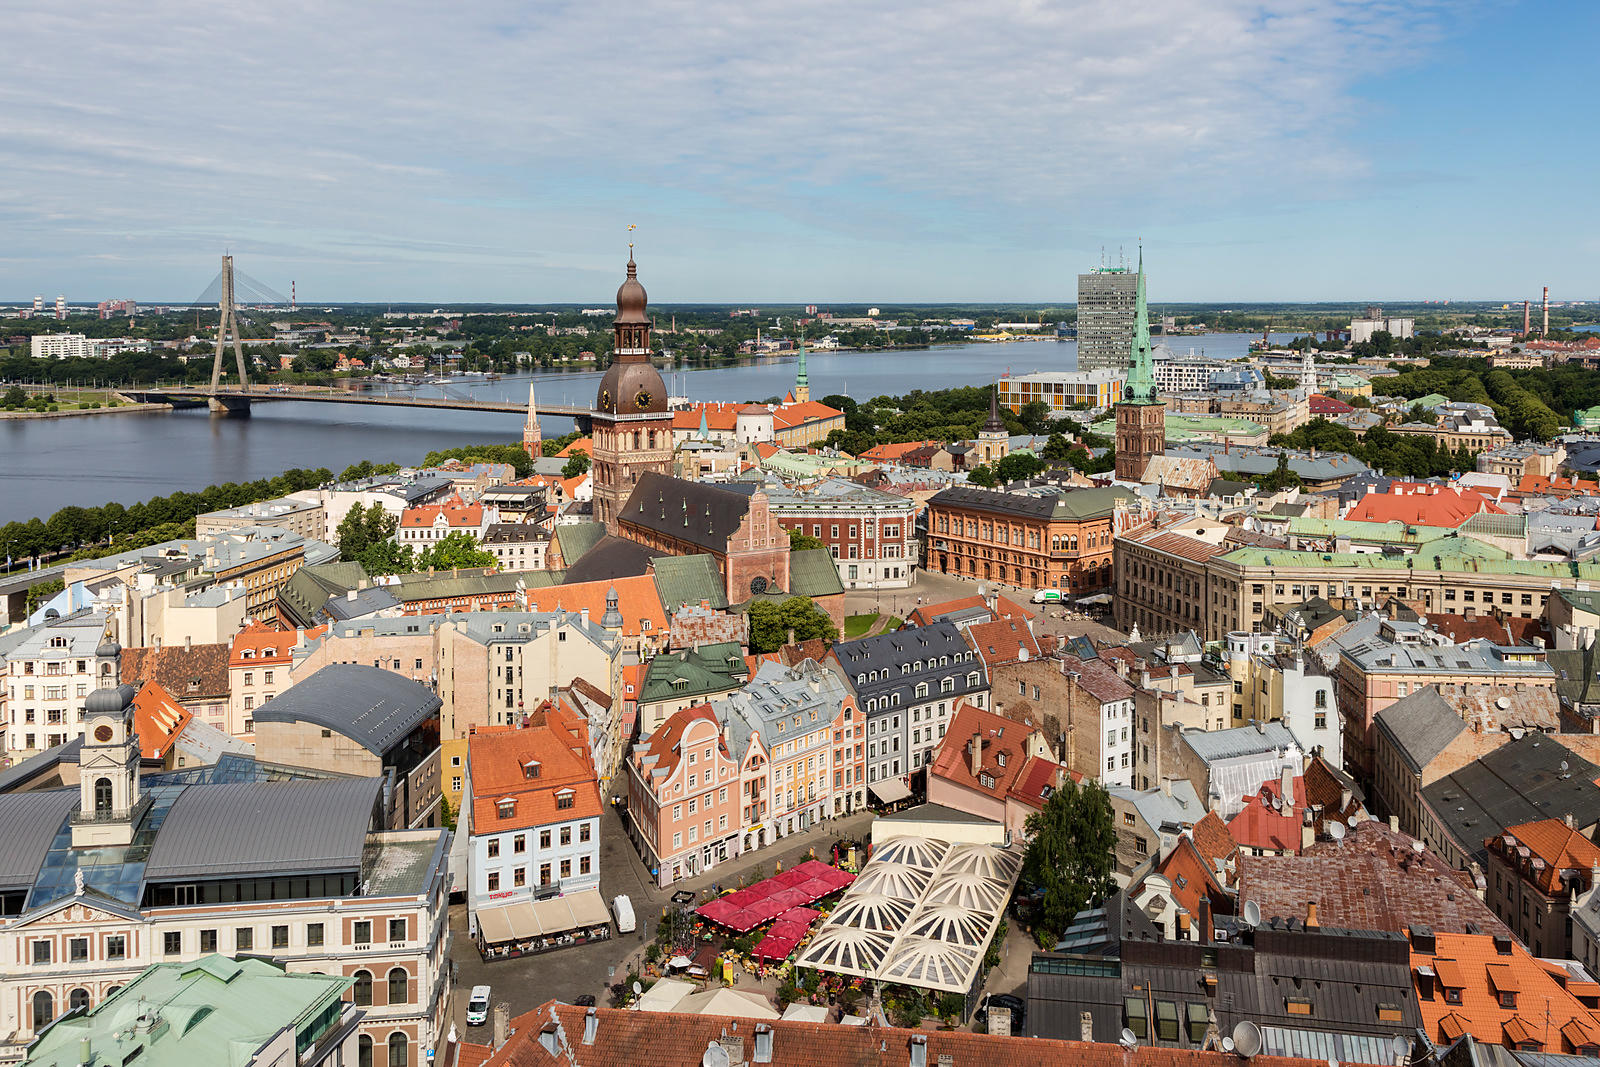 Elevated View of Riga from St Peter's Church